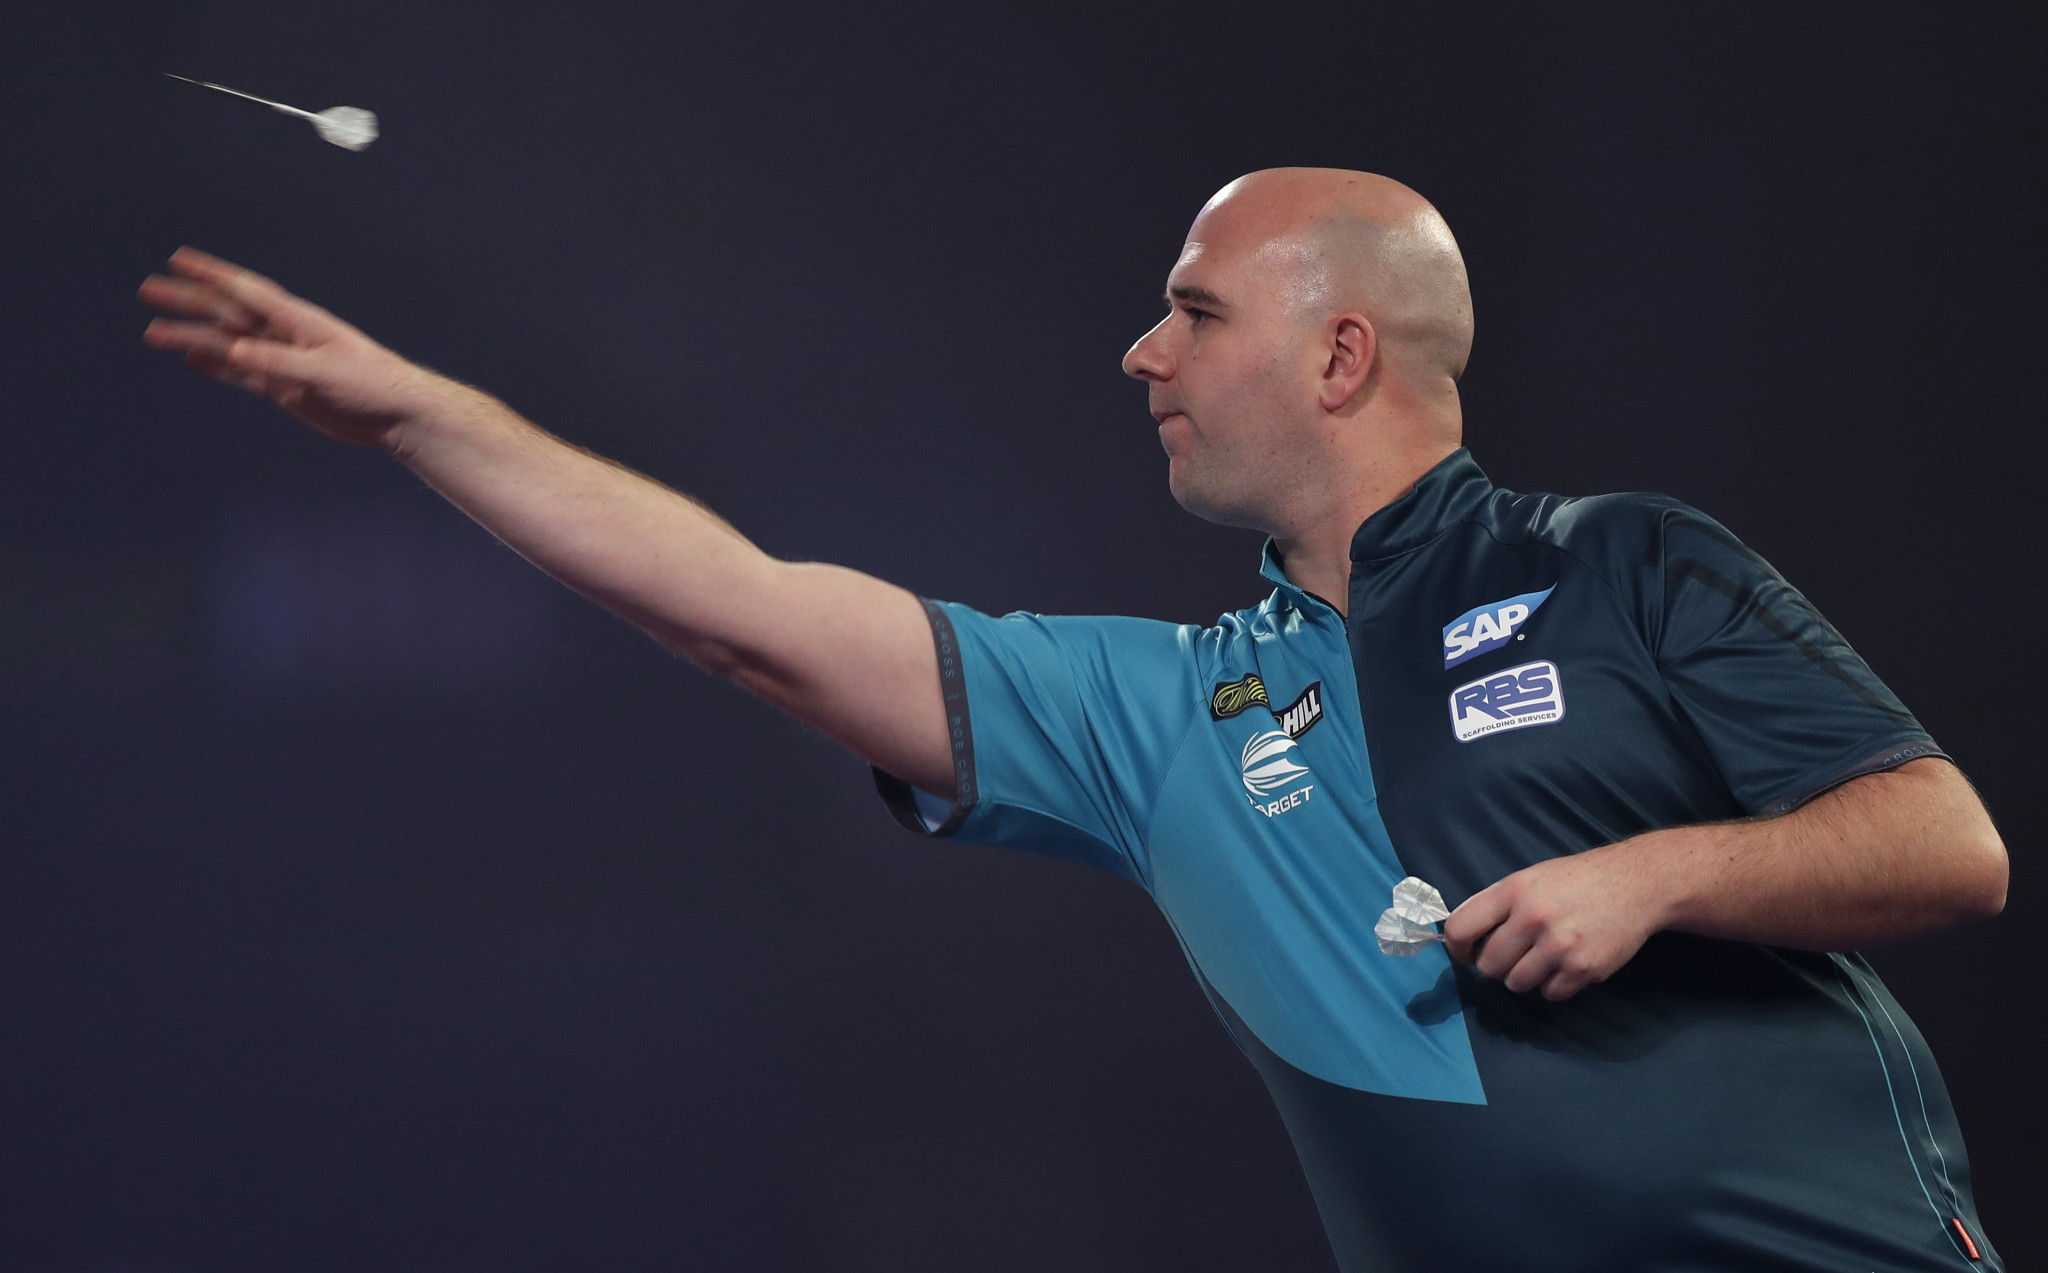 Former champions Cross and Lewis knocked out of PDC World Darts Championship